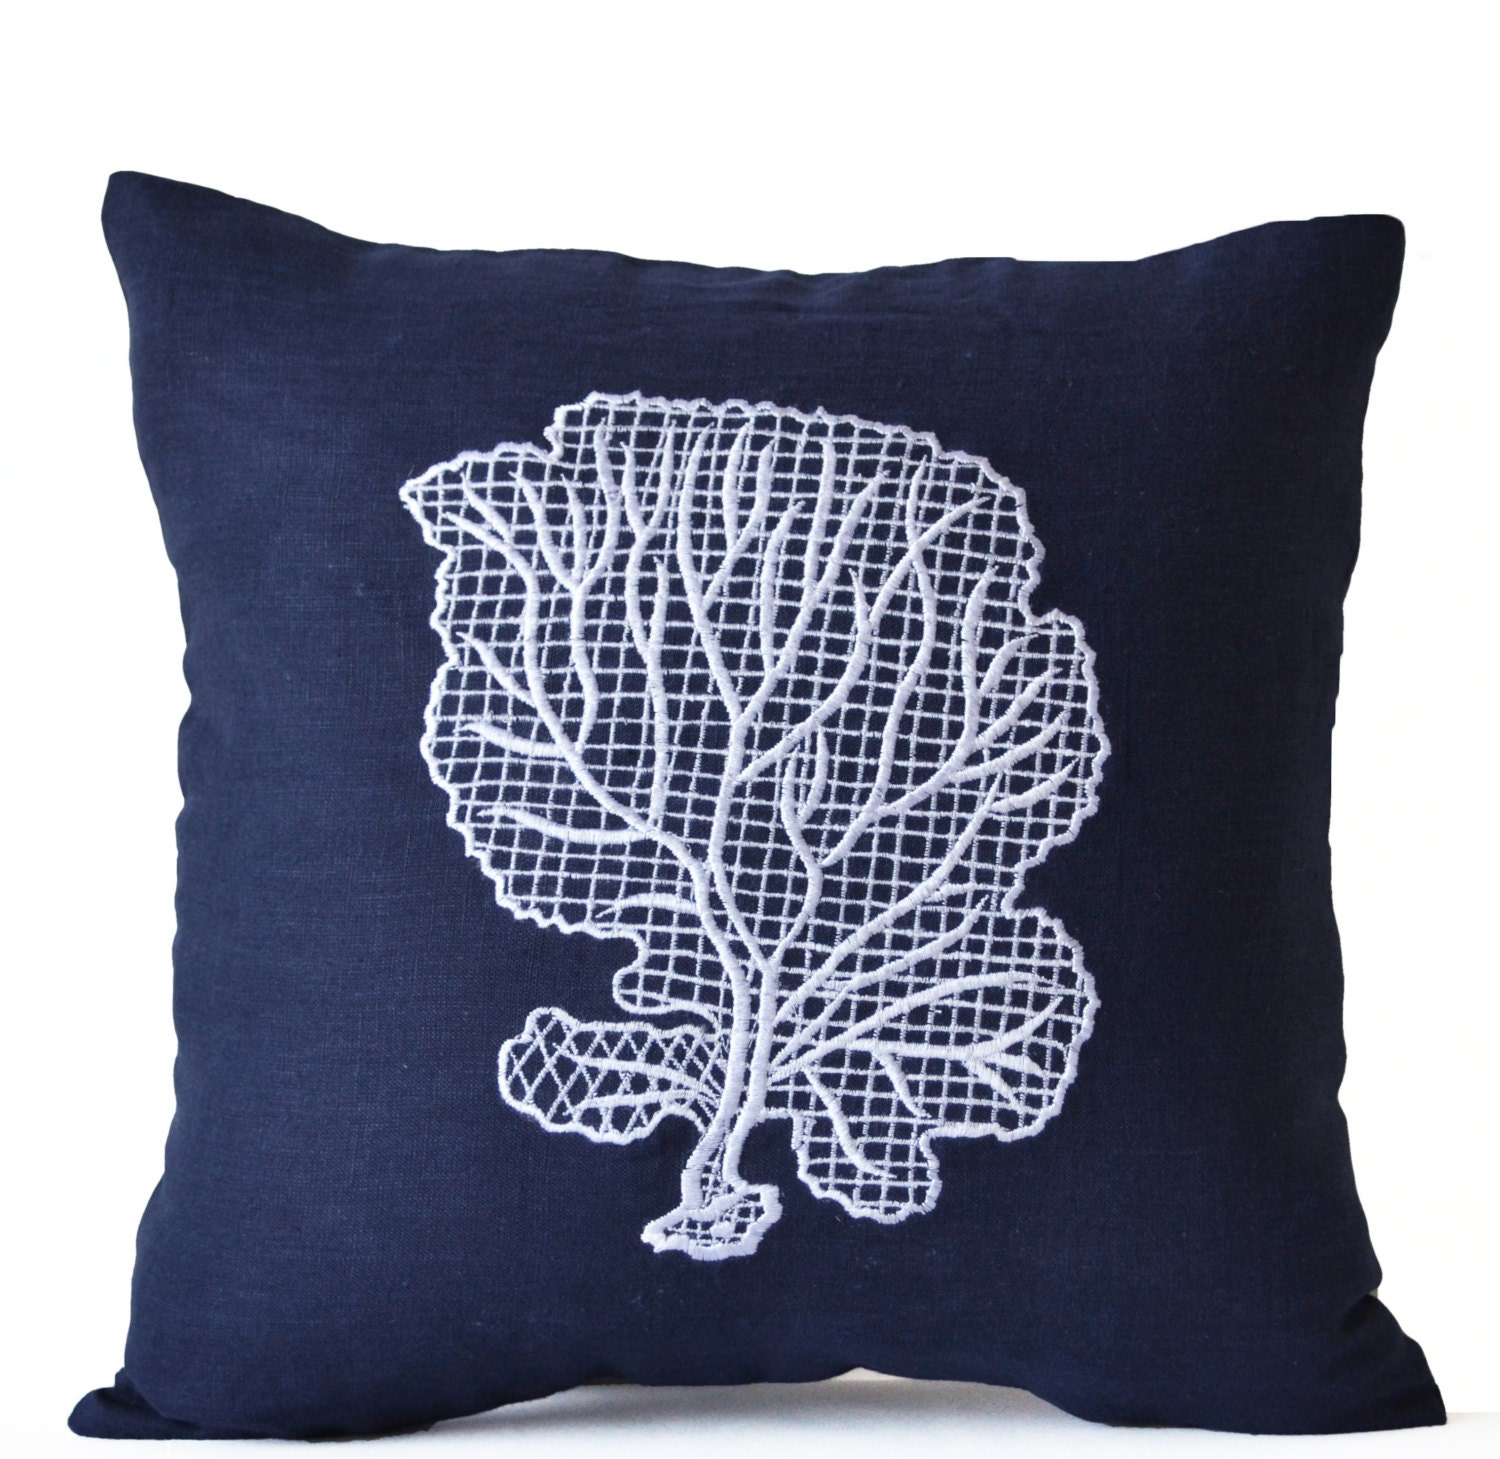 Decorative Pillows Navy : Navy Blue Throw Pillow Case Beach Decor Oceanic Pillow